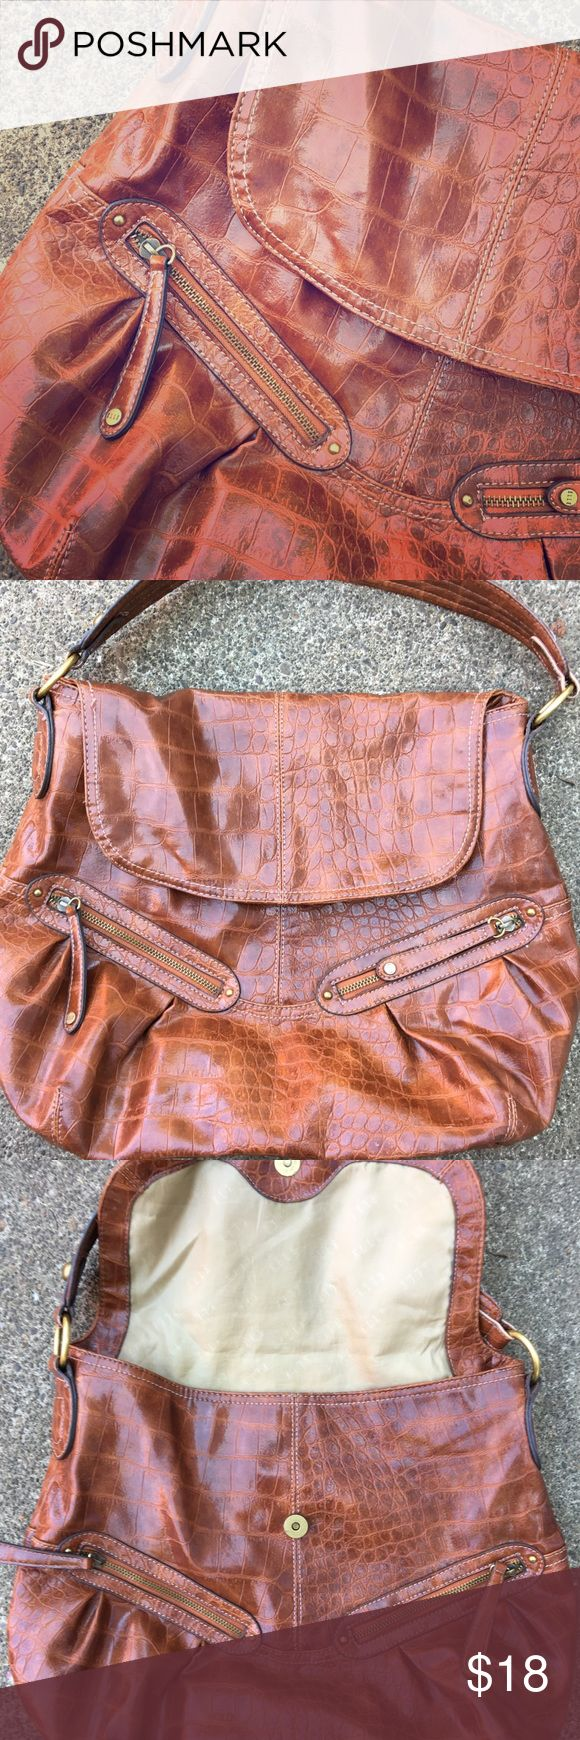 Elle brown purse! Roomy super cute brown purse, lots of zippers and pockets. In gently used condition. Only flaw is a mark inside as shown in photo. Outside is in excellent condition. Elle Bags